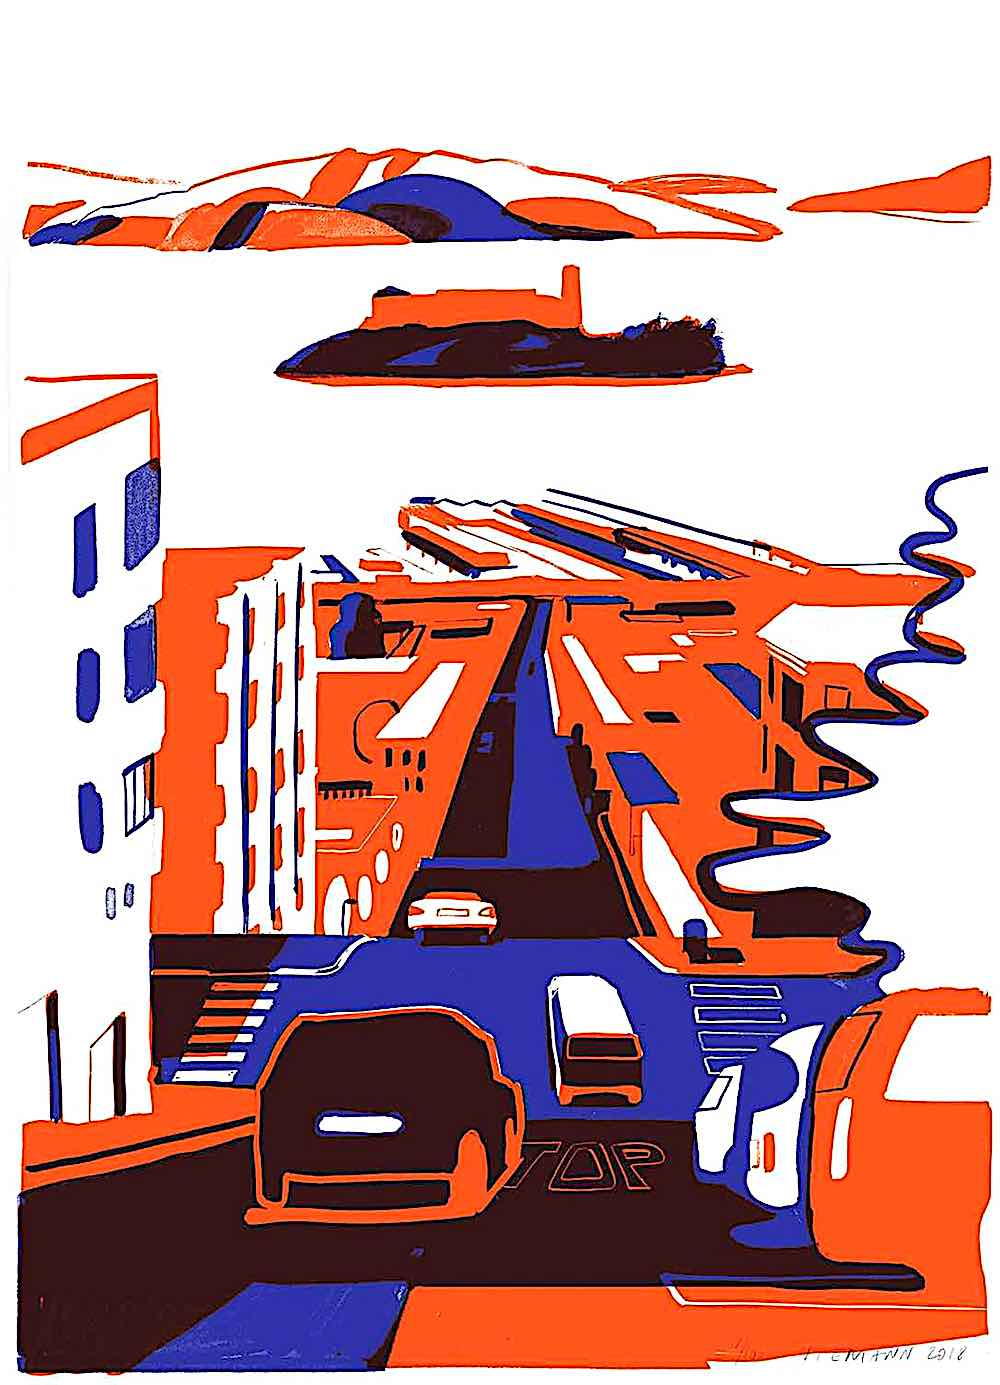 Christoph Niemann art, traffic in red and blue with an island in the bay